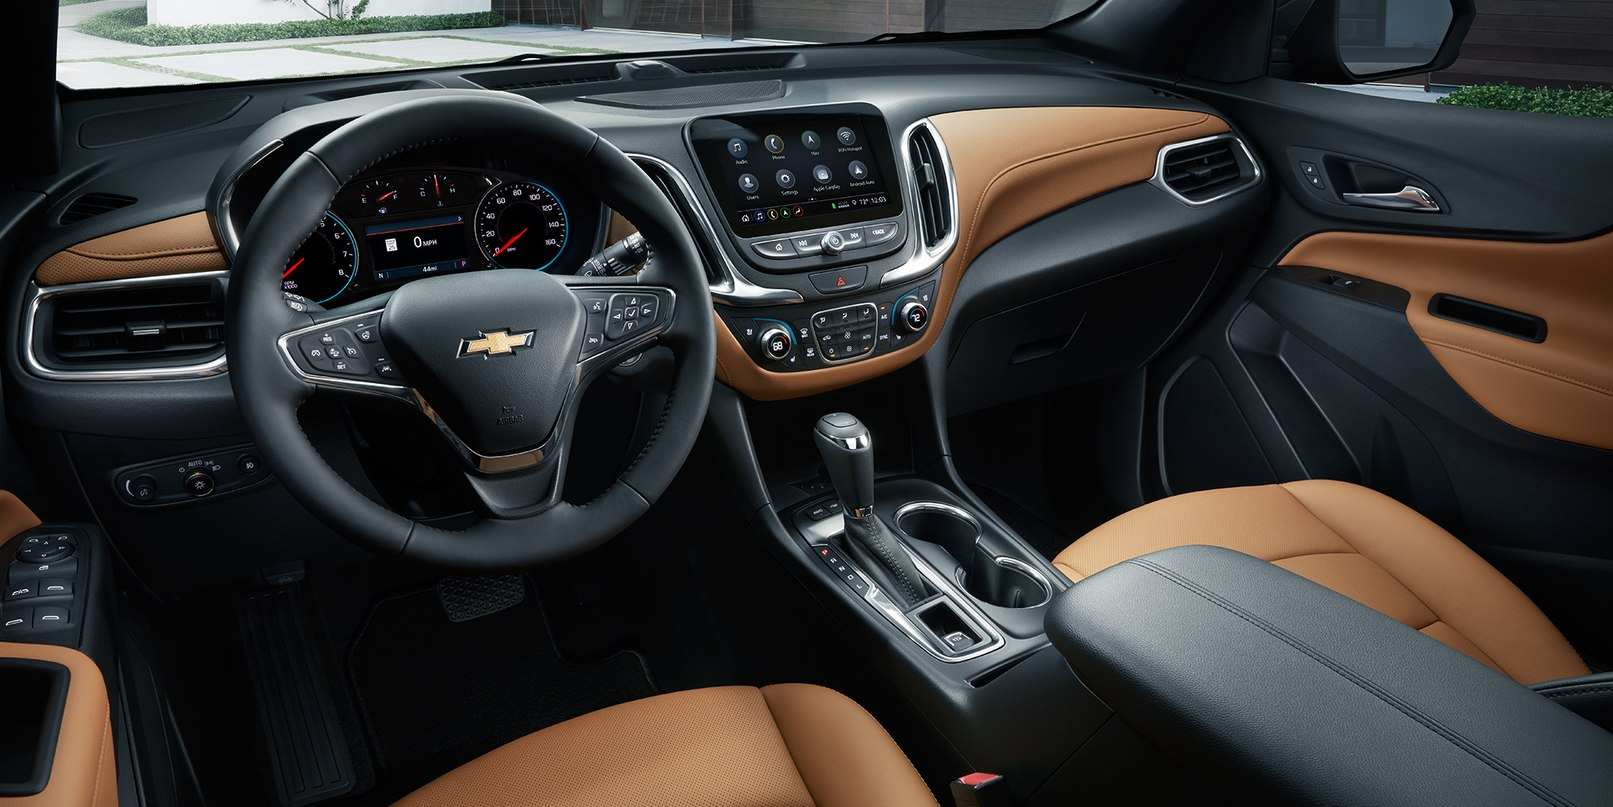 73 New 2019 Chevrolet Equinox Price Design And Review